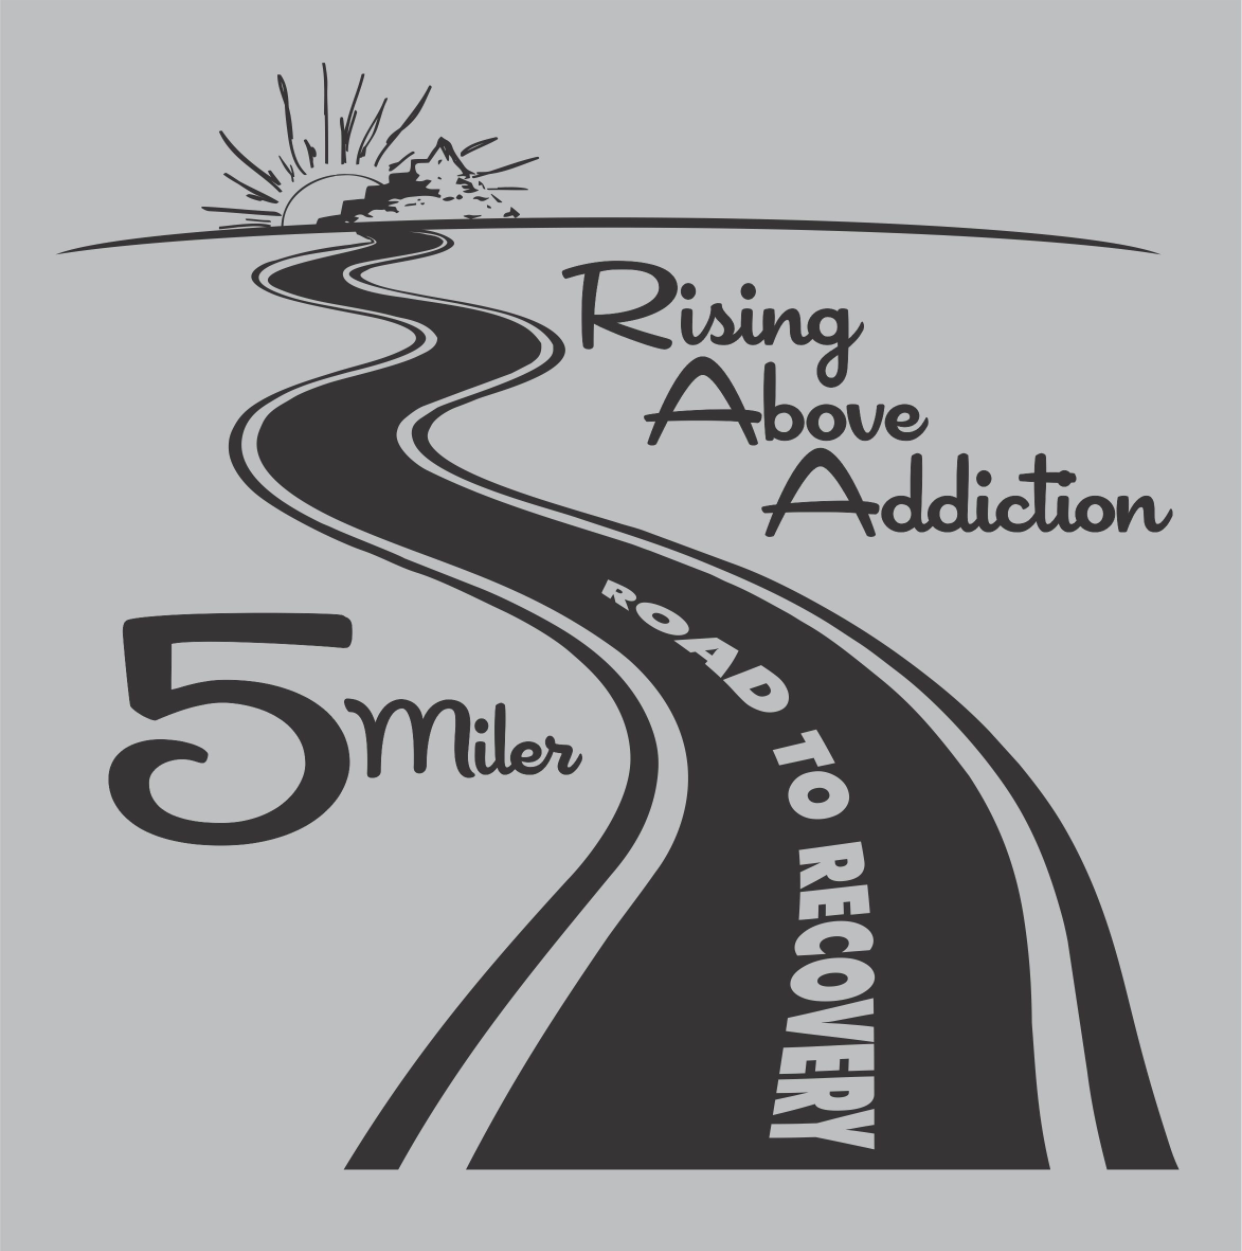 Rising Above Addiction - Annual Road To Recovery 5-Miler Race Fundraiser